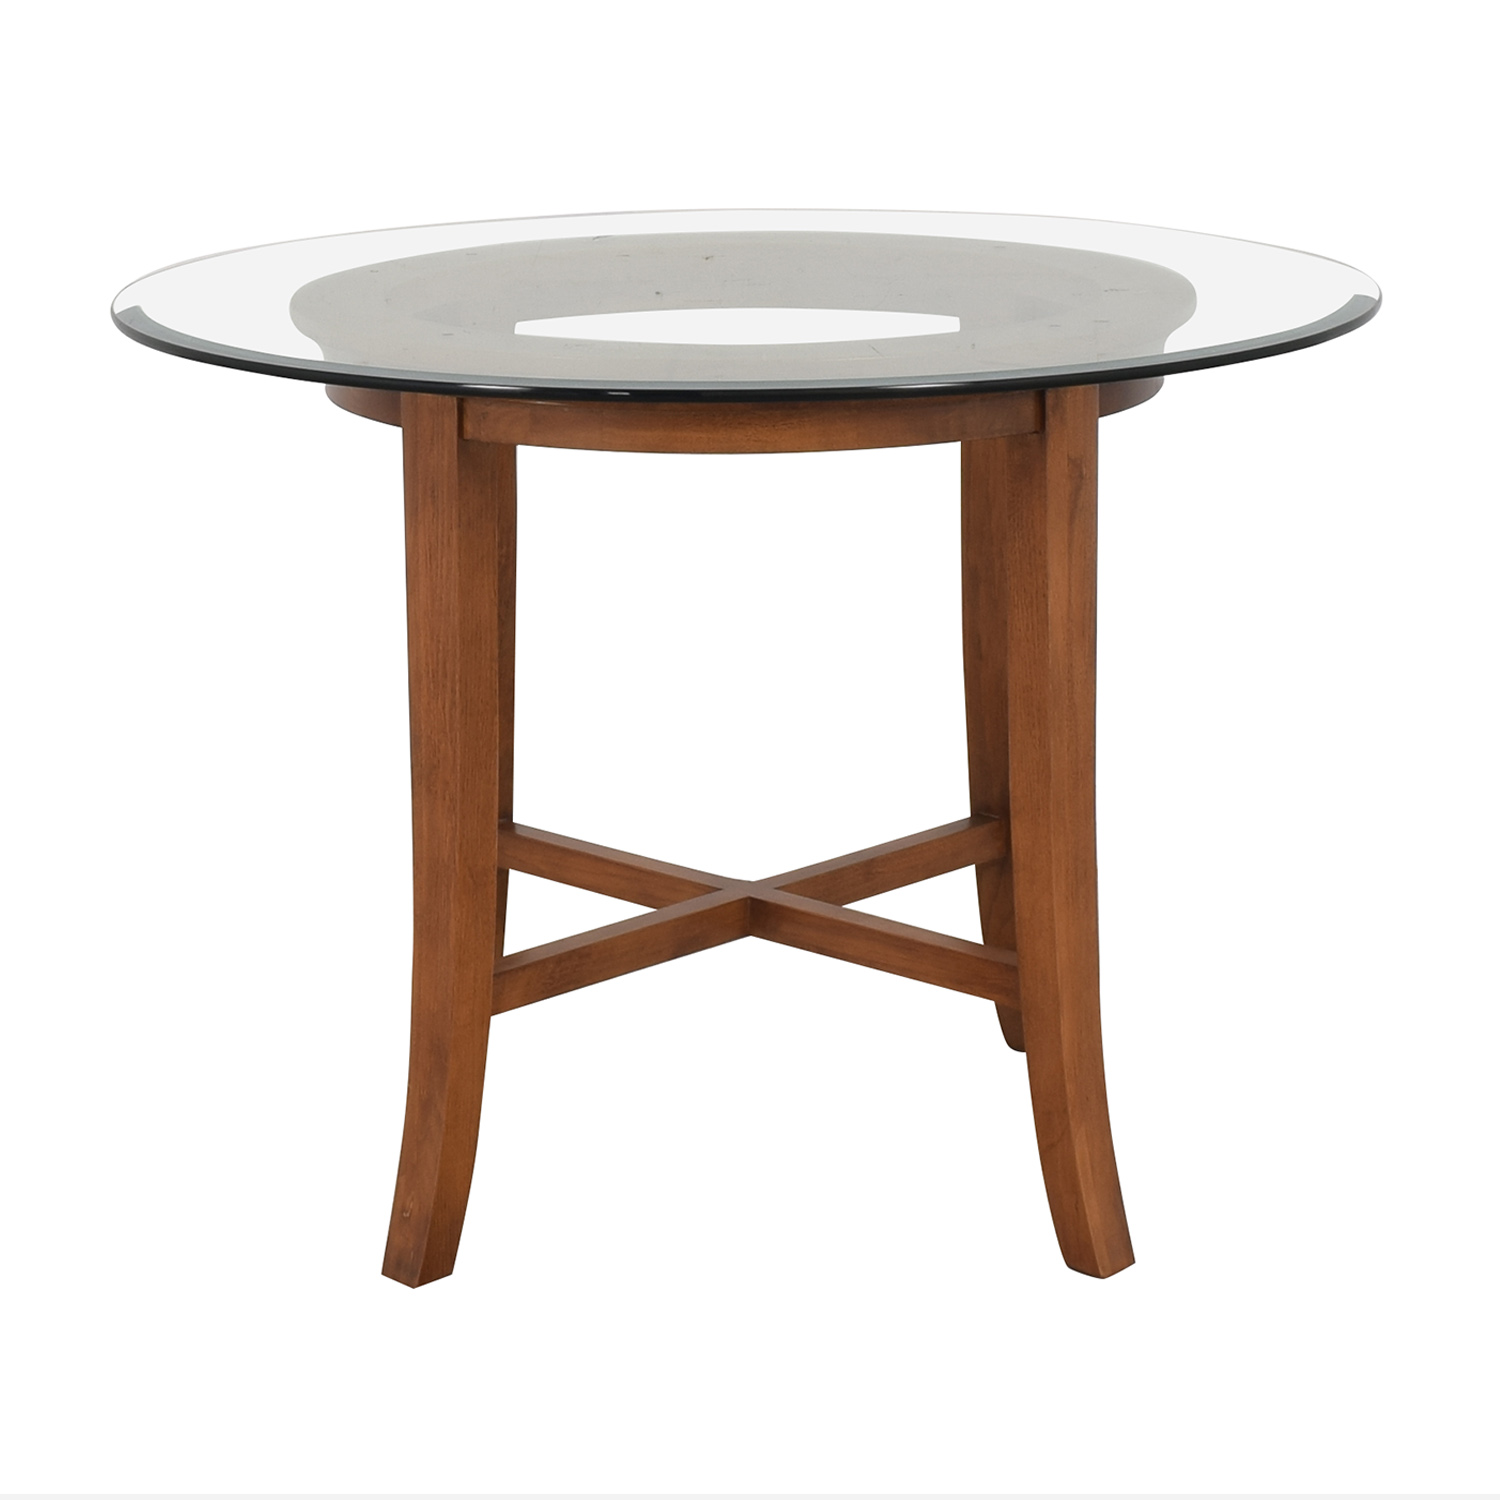 Crate & Barrel Crate & Barrel Halo Round Dining Table ma